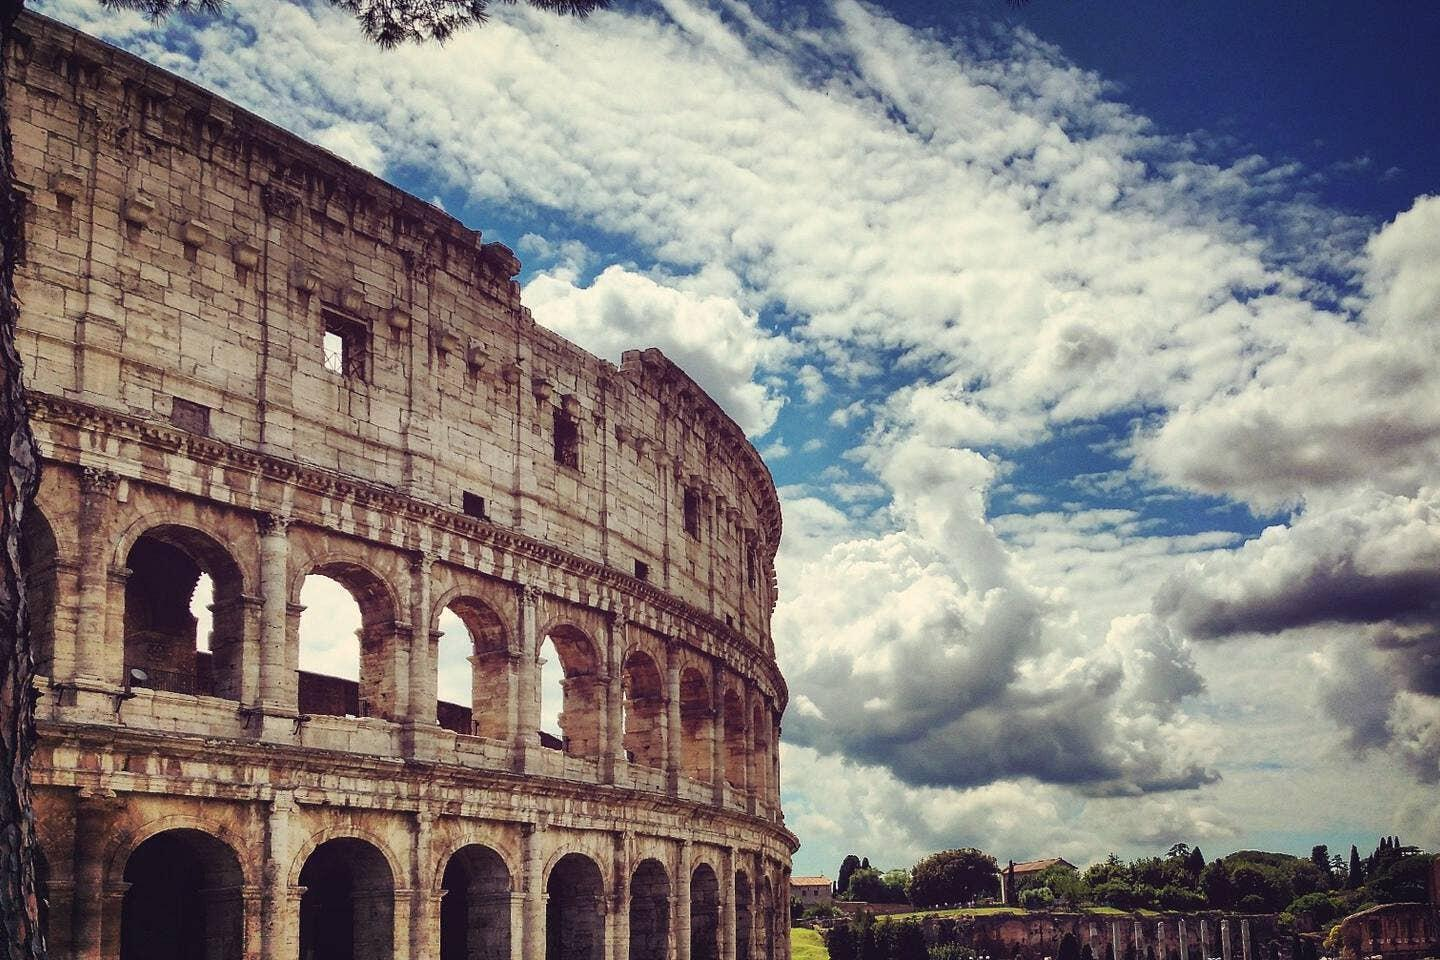 Trevi Holiday | Dream Stay for 2 in Heart of Rome! Slide-3